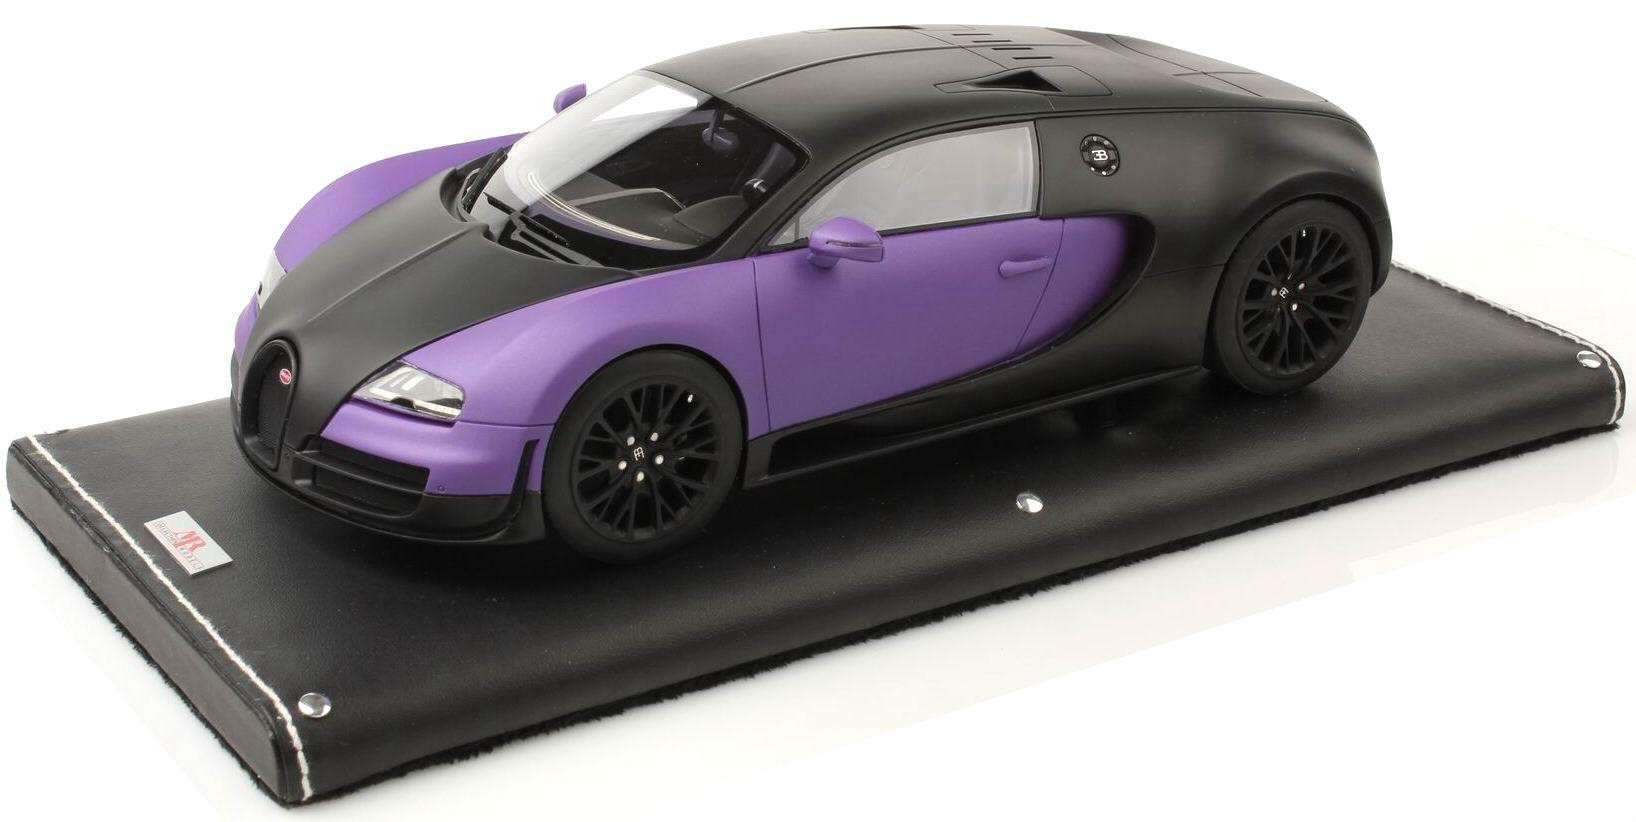 bugatti veyron super sport voiture miniature planete auto lille. Black Bedroom Furniture Sets. Home Design Ideas